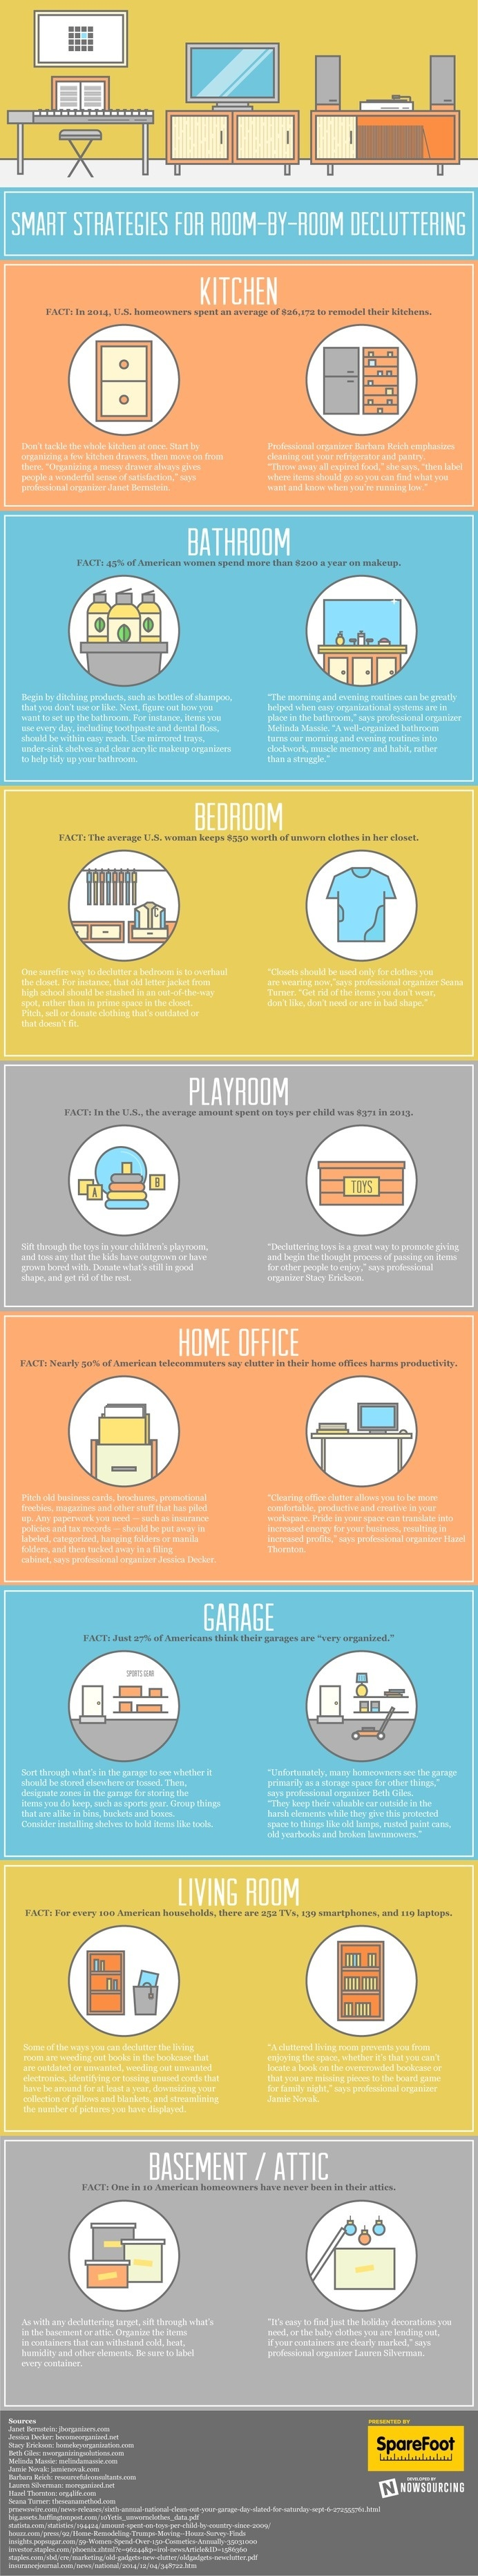 Decluttering doesn't have to be daunting.Learn tips and tricks from this infographic. #cleaning #decluttering #spring